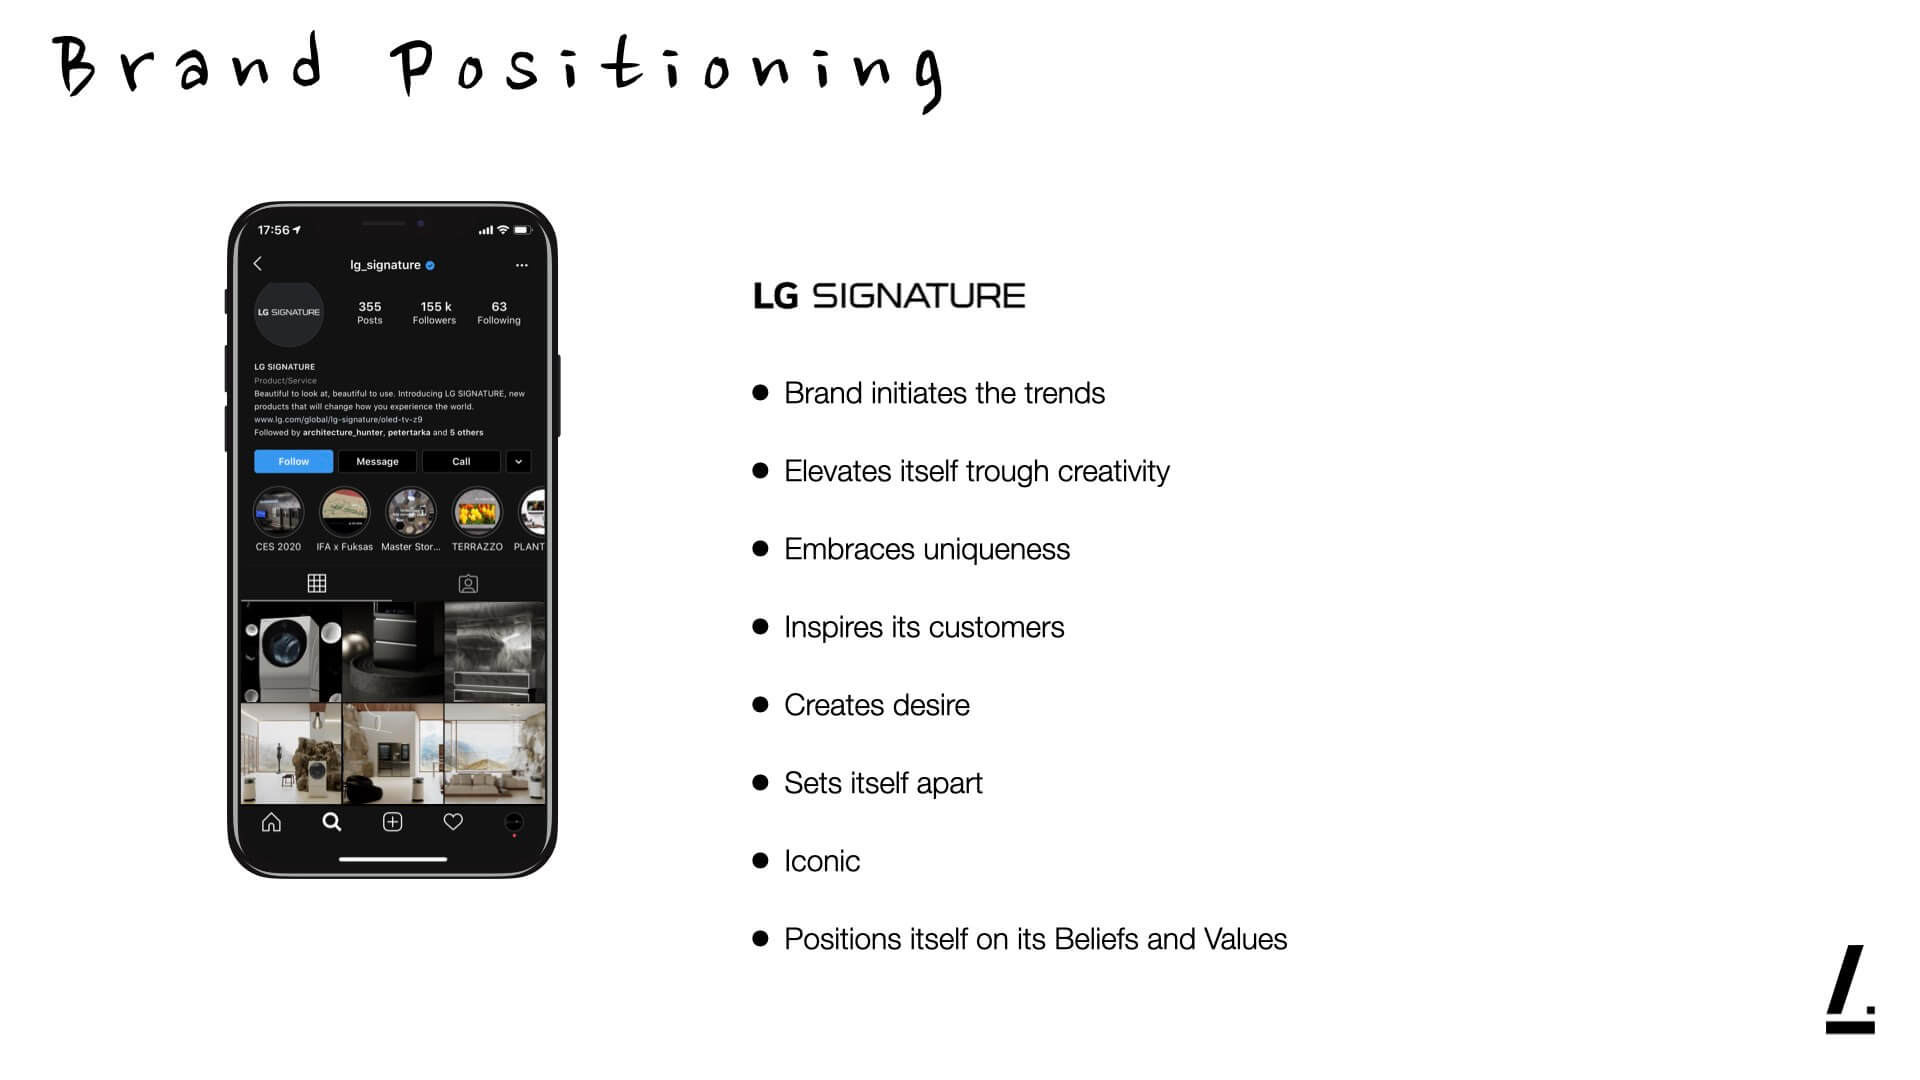 A slide made for LG Signature's social media campaign